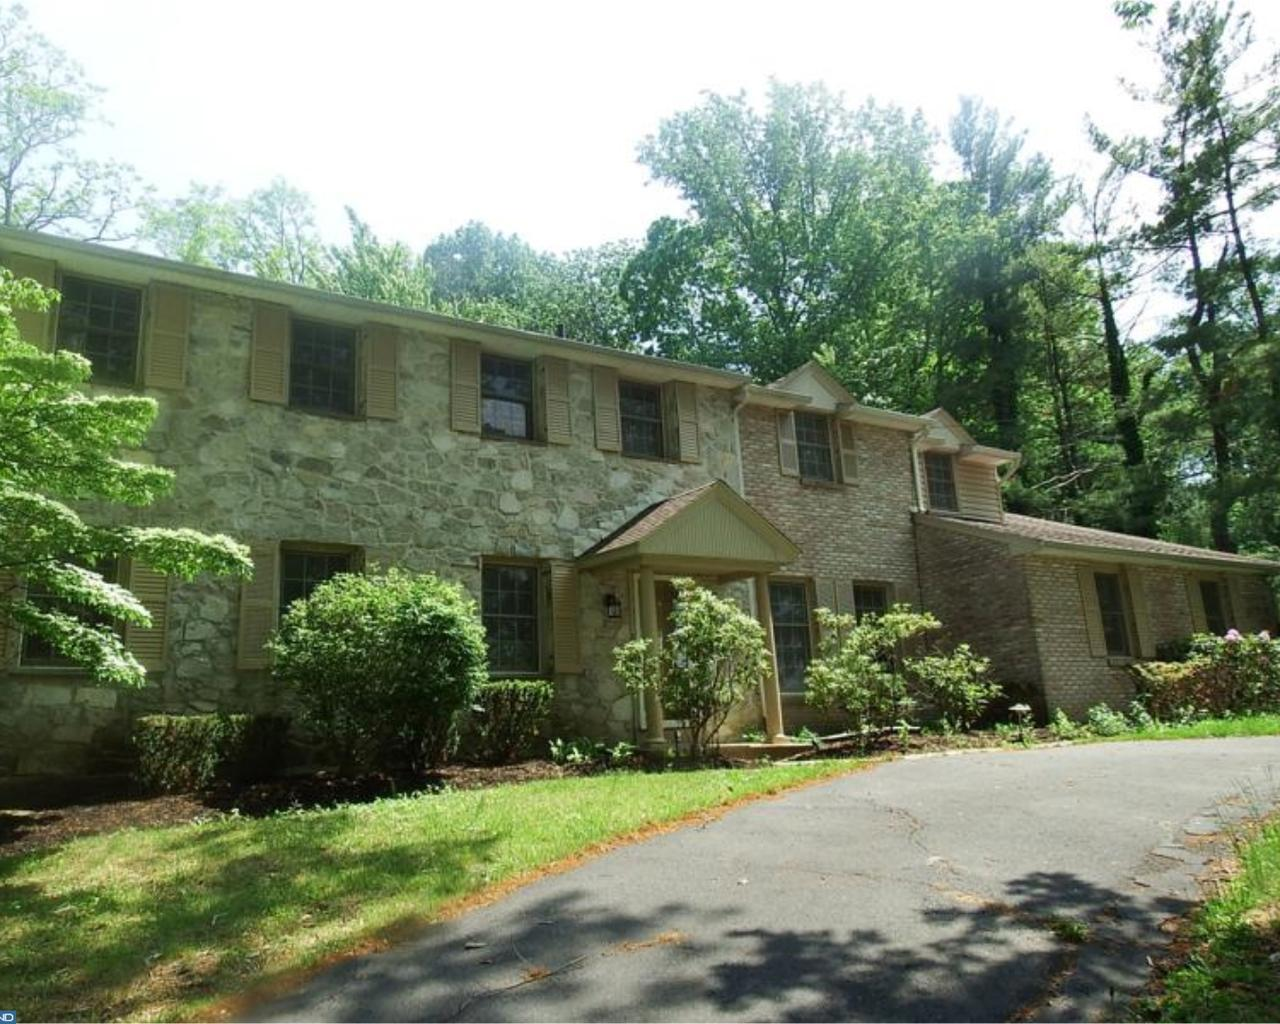 Property for sale at 3651 HEATON RD, Huntingdon Valley,  PA 19006